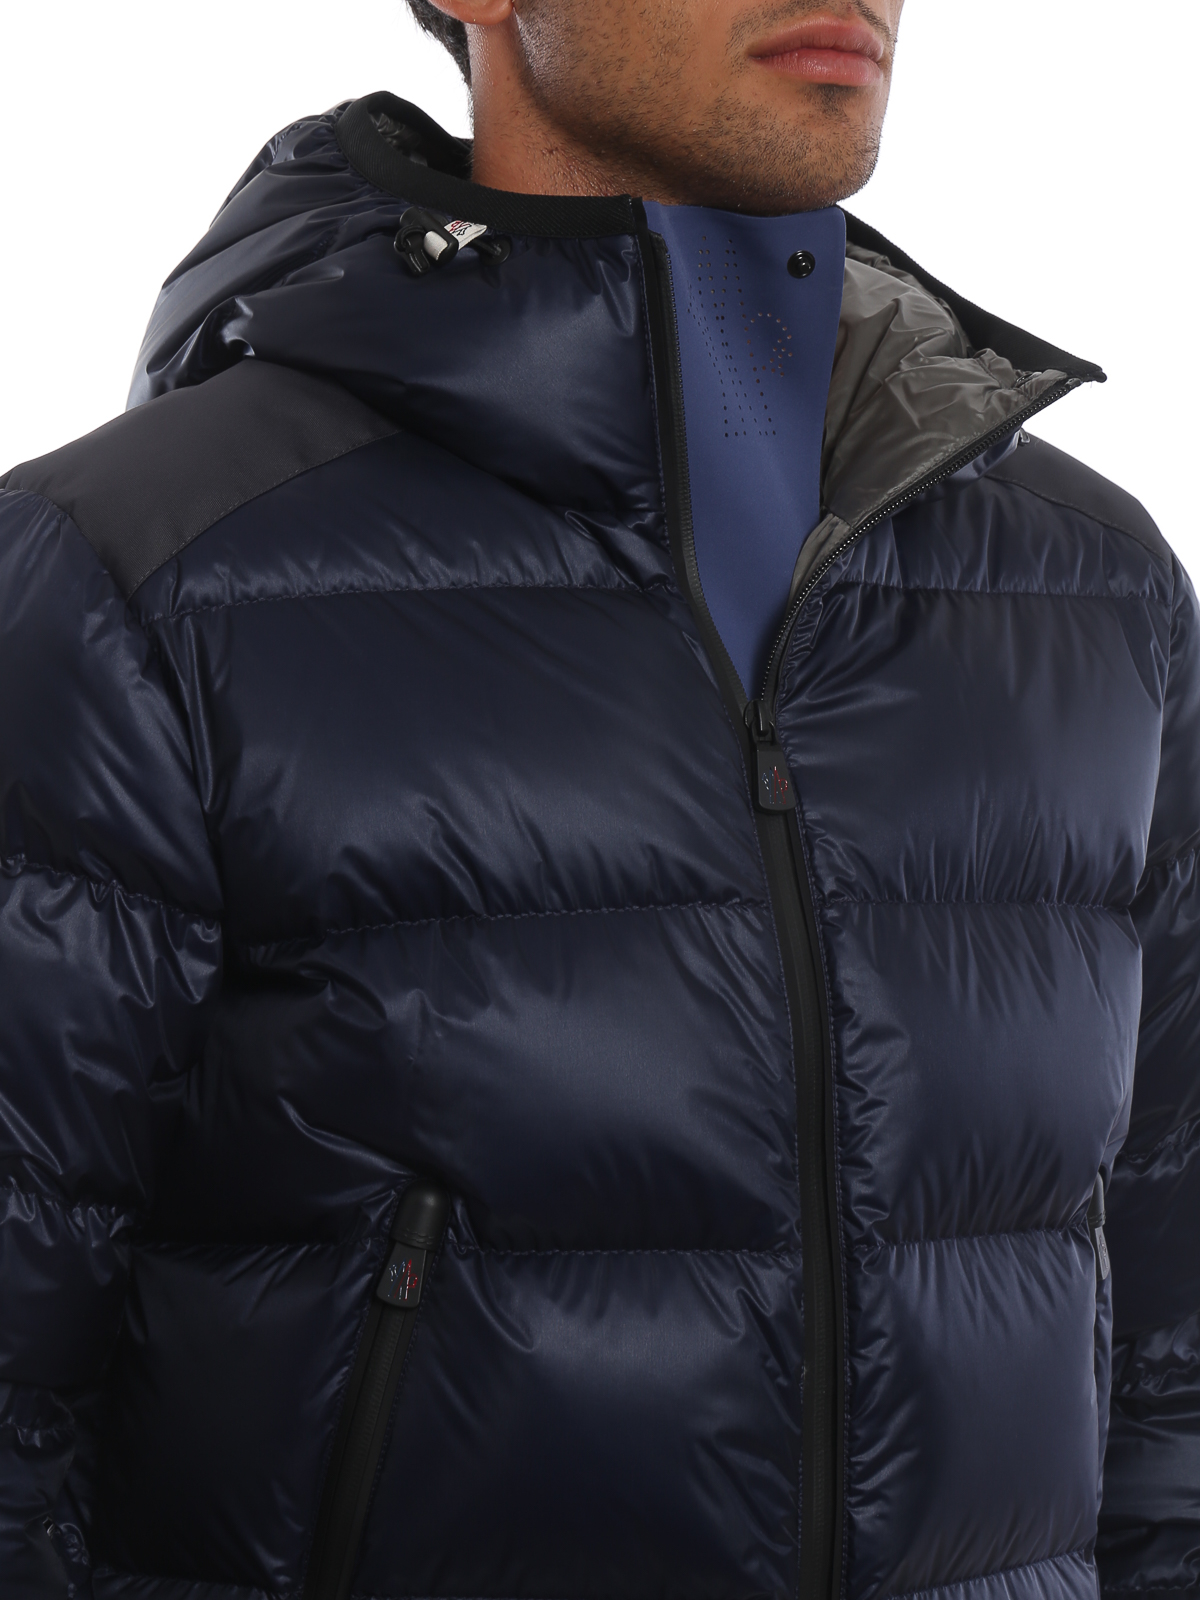 MONCLER GRENOBLE buy online Interthux dark blue hooded puffer jacket